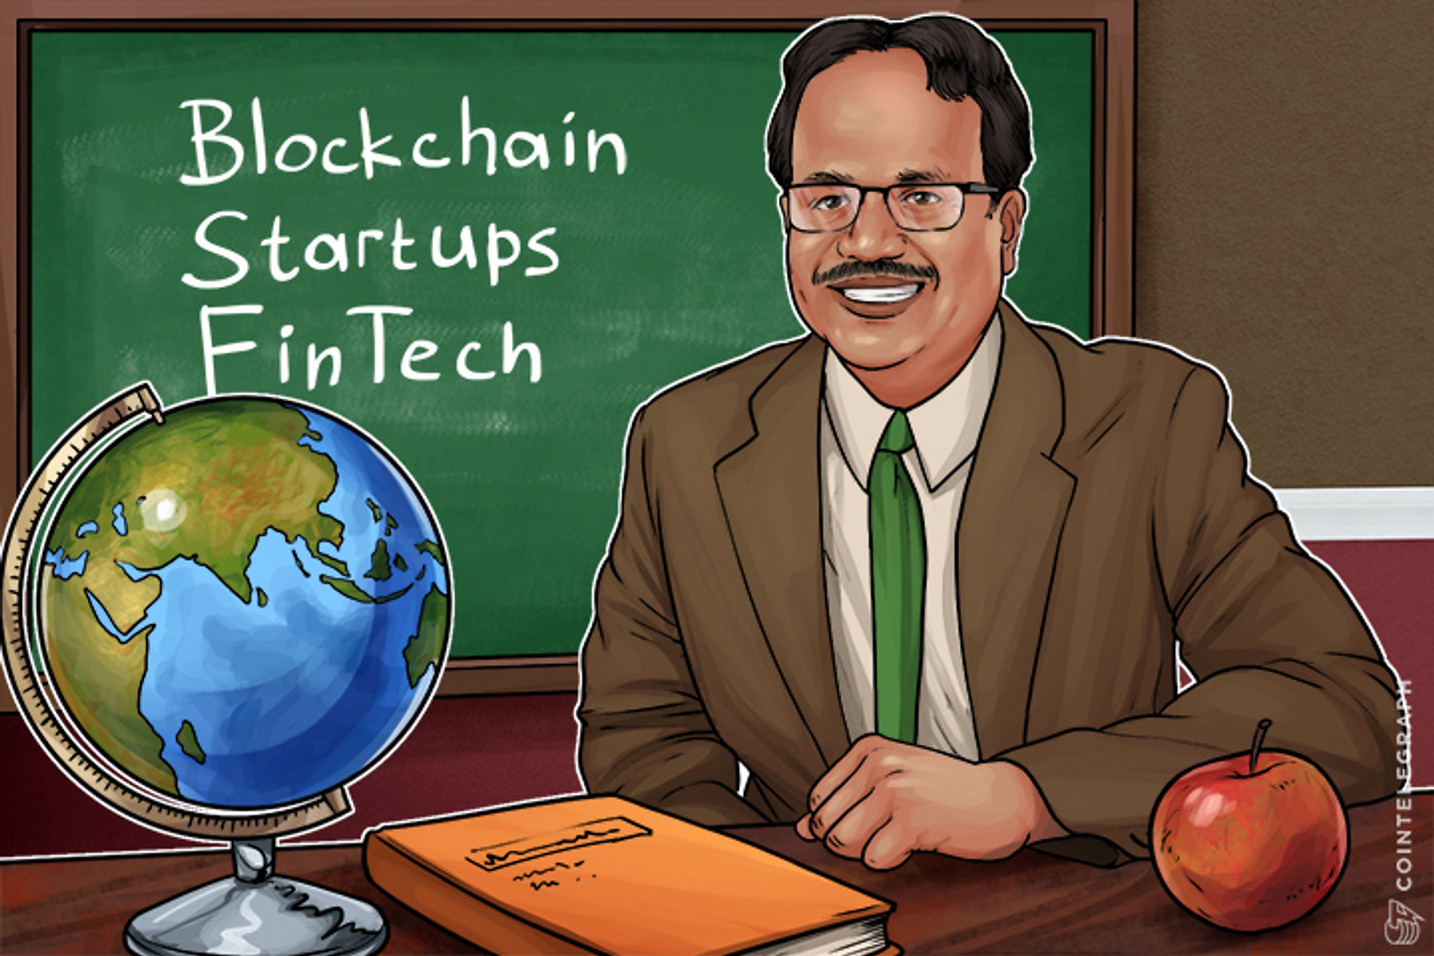 Indian State Andhra Pradesh to Launch Blockchain Institute, Aims to Lead Asian Market